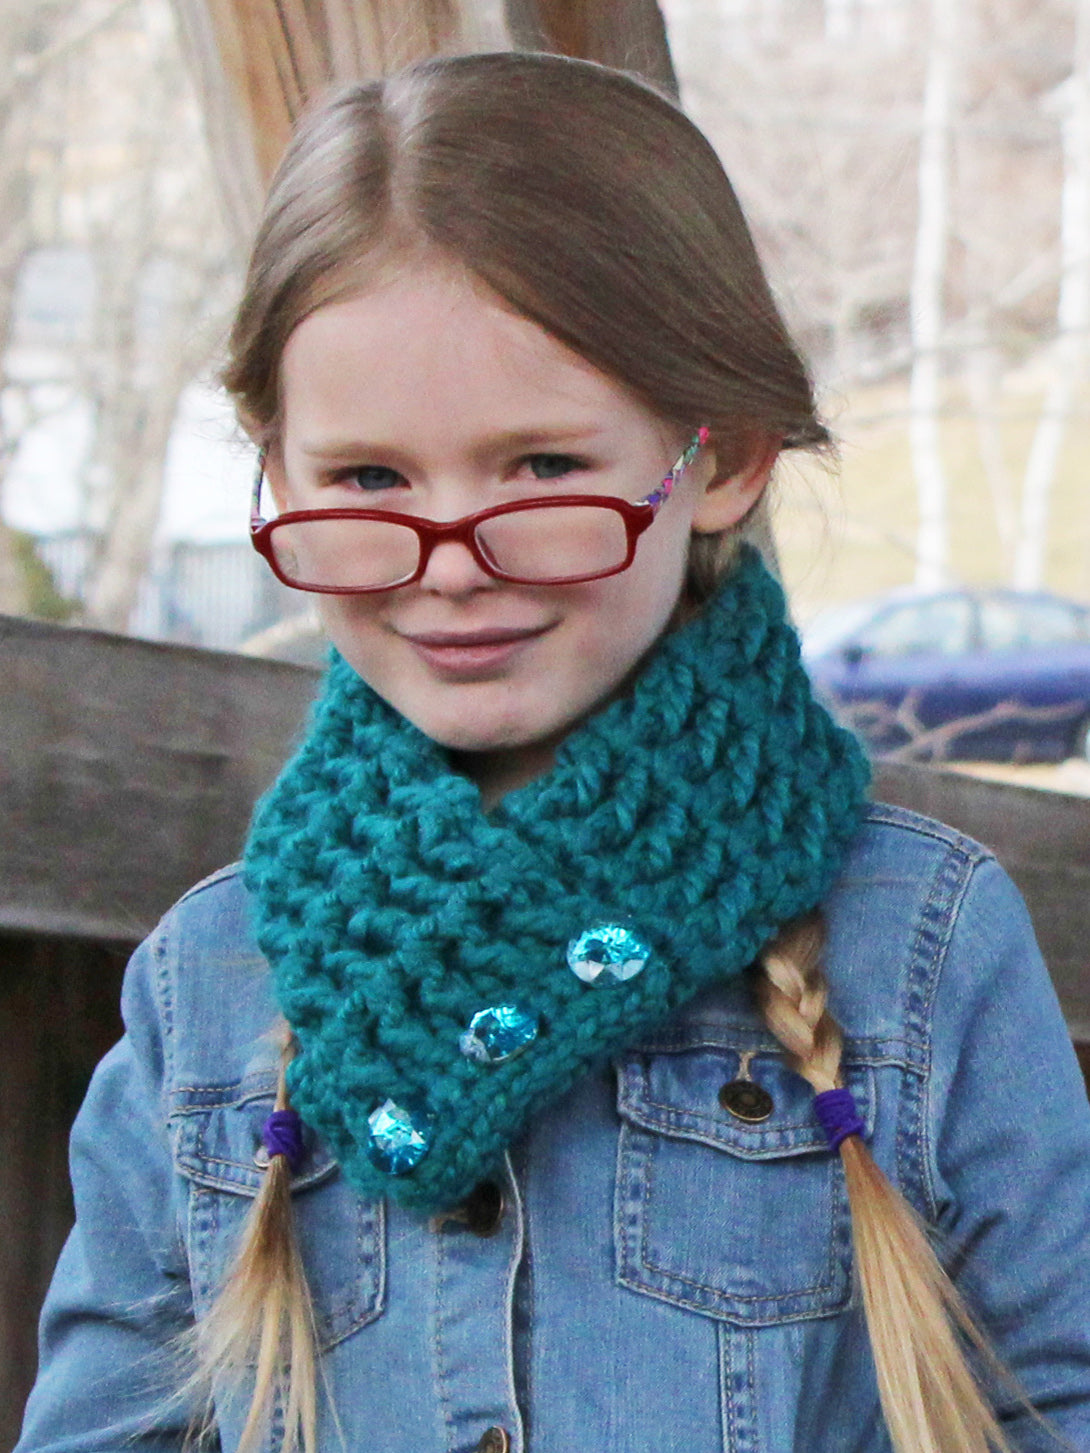 Teal button scarf by Two Seaside Babes